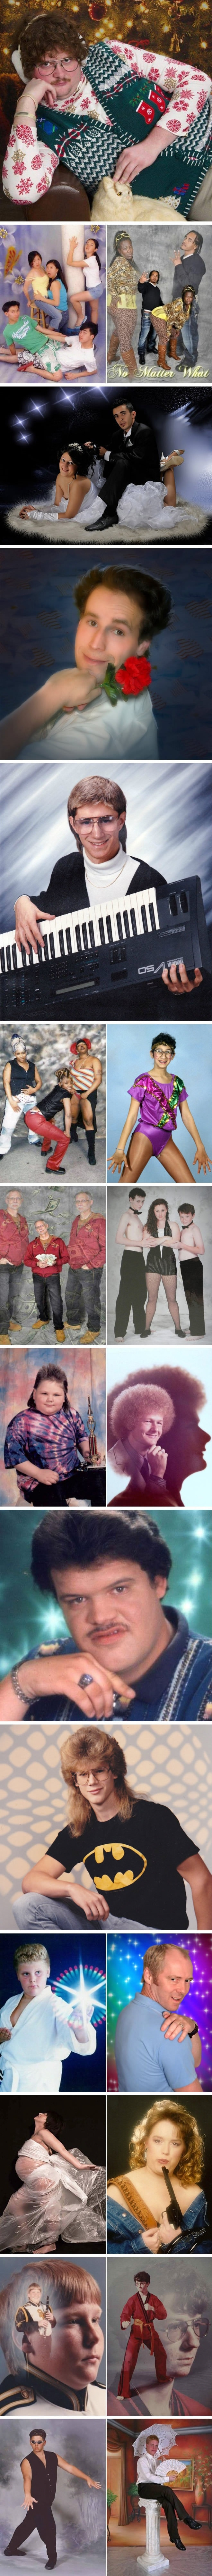 Low-budget glamour shots